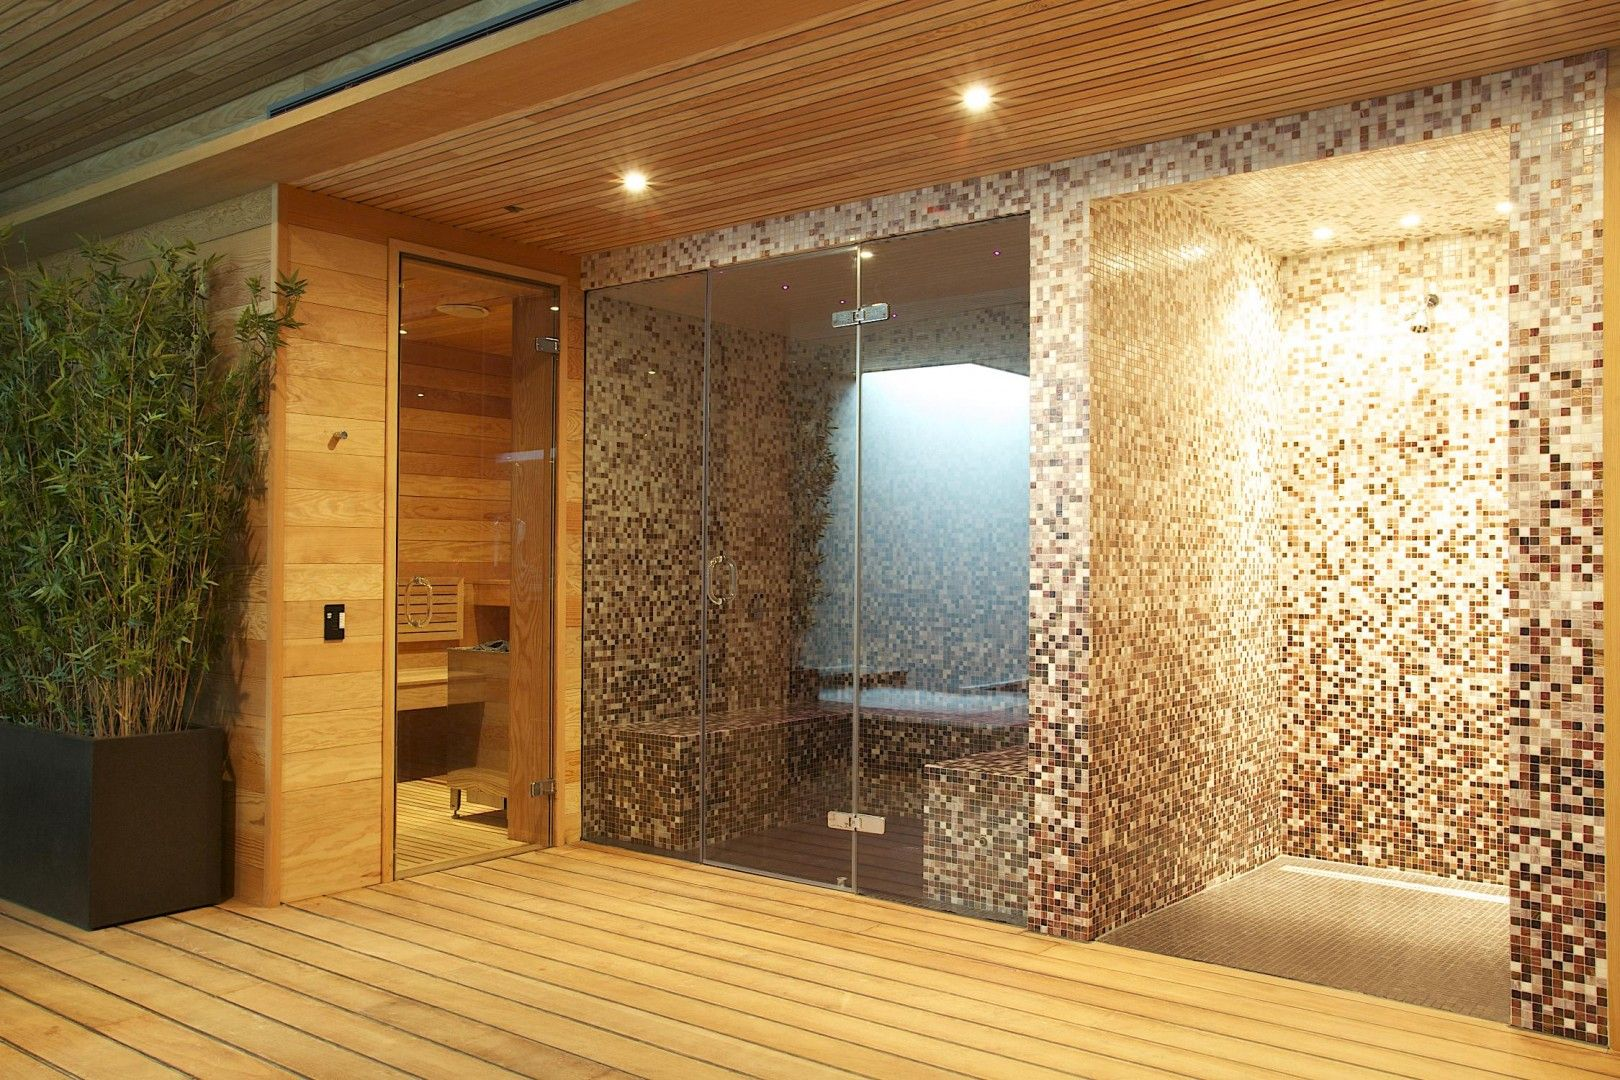 Sauna / Steam Room / Shower area